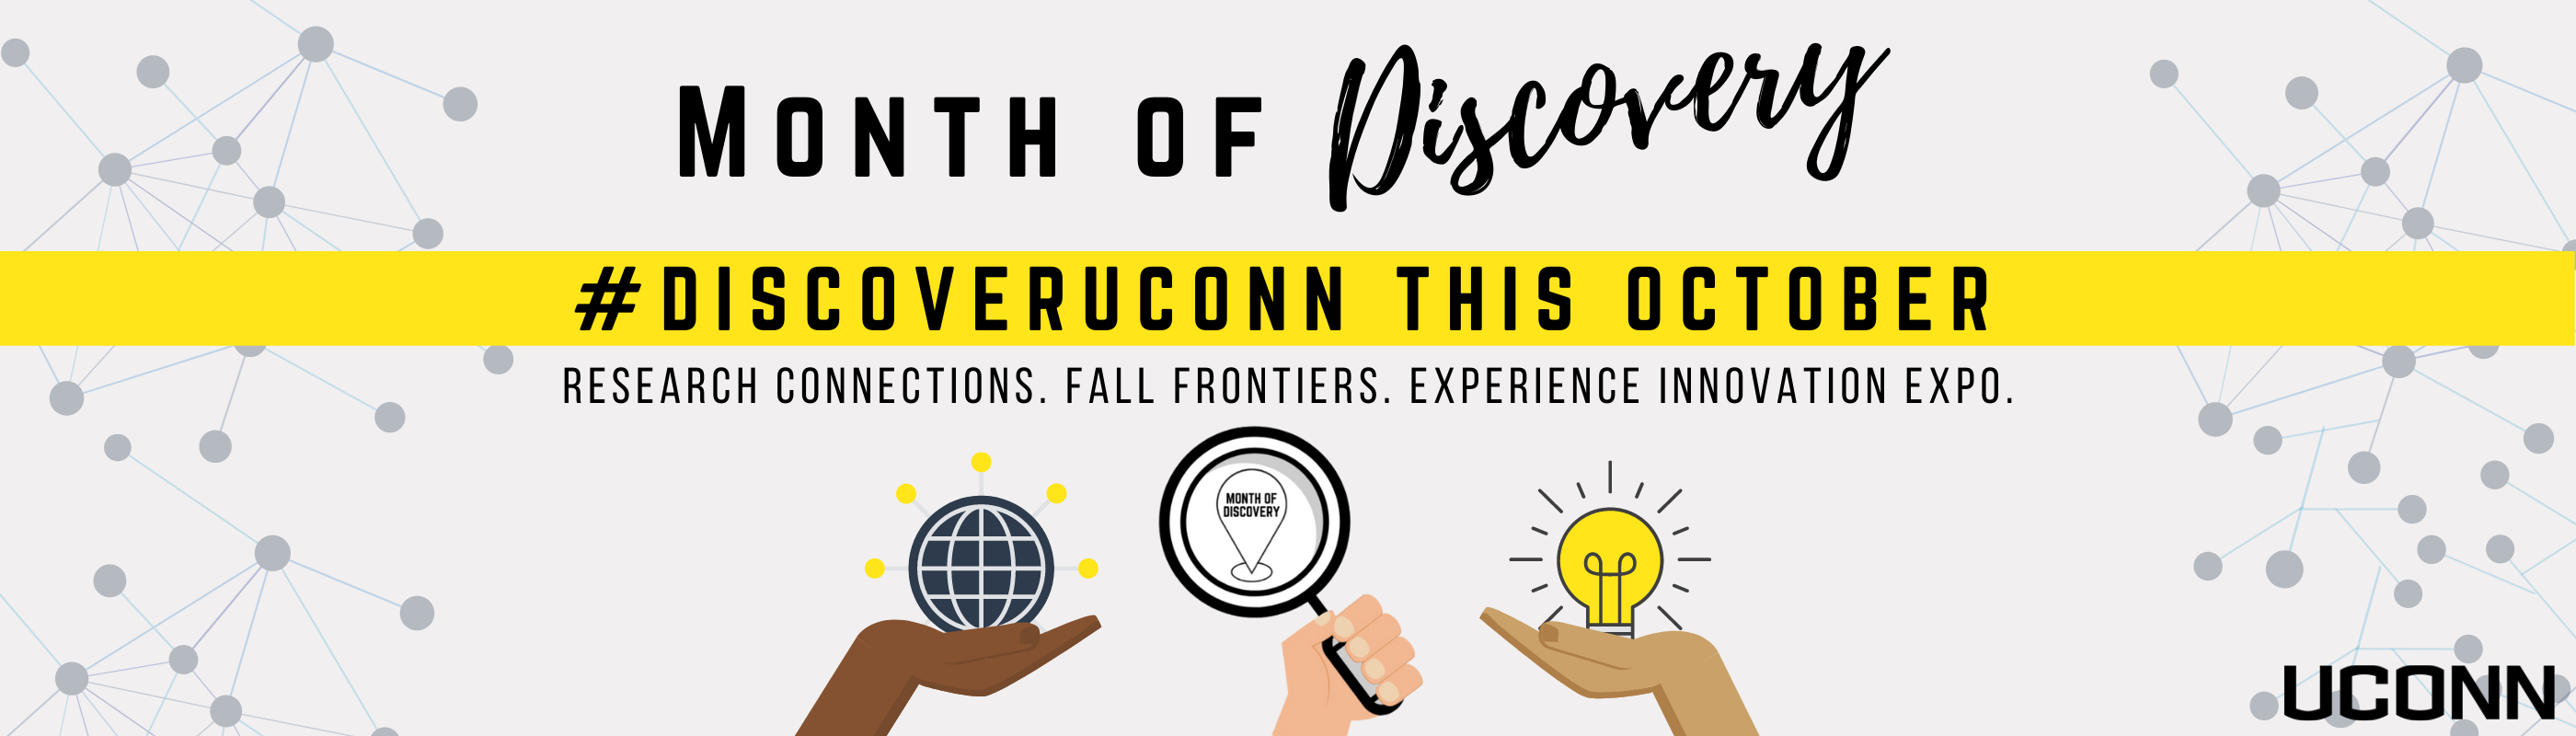 Month of Discovery 2021